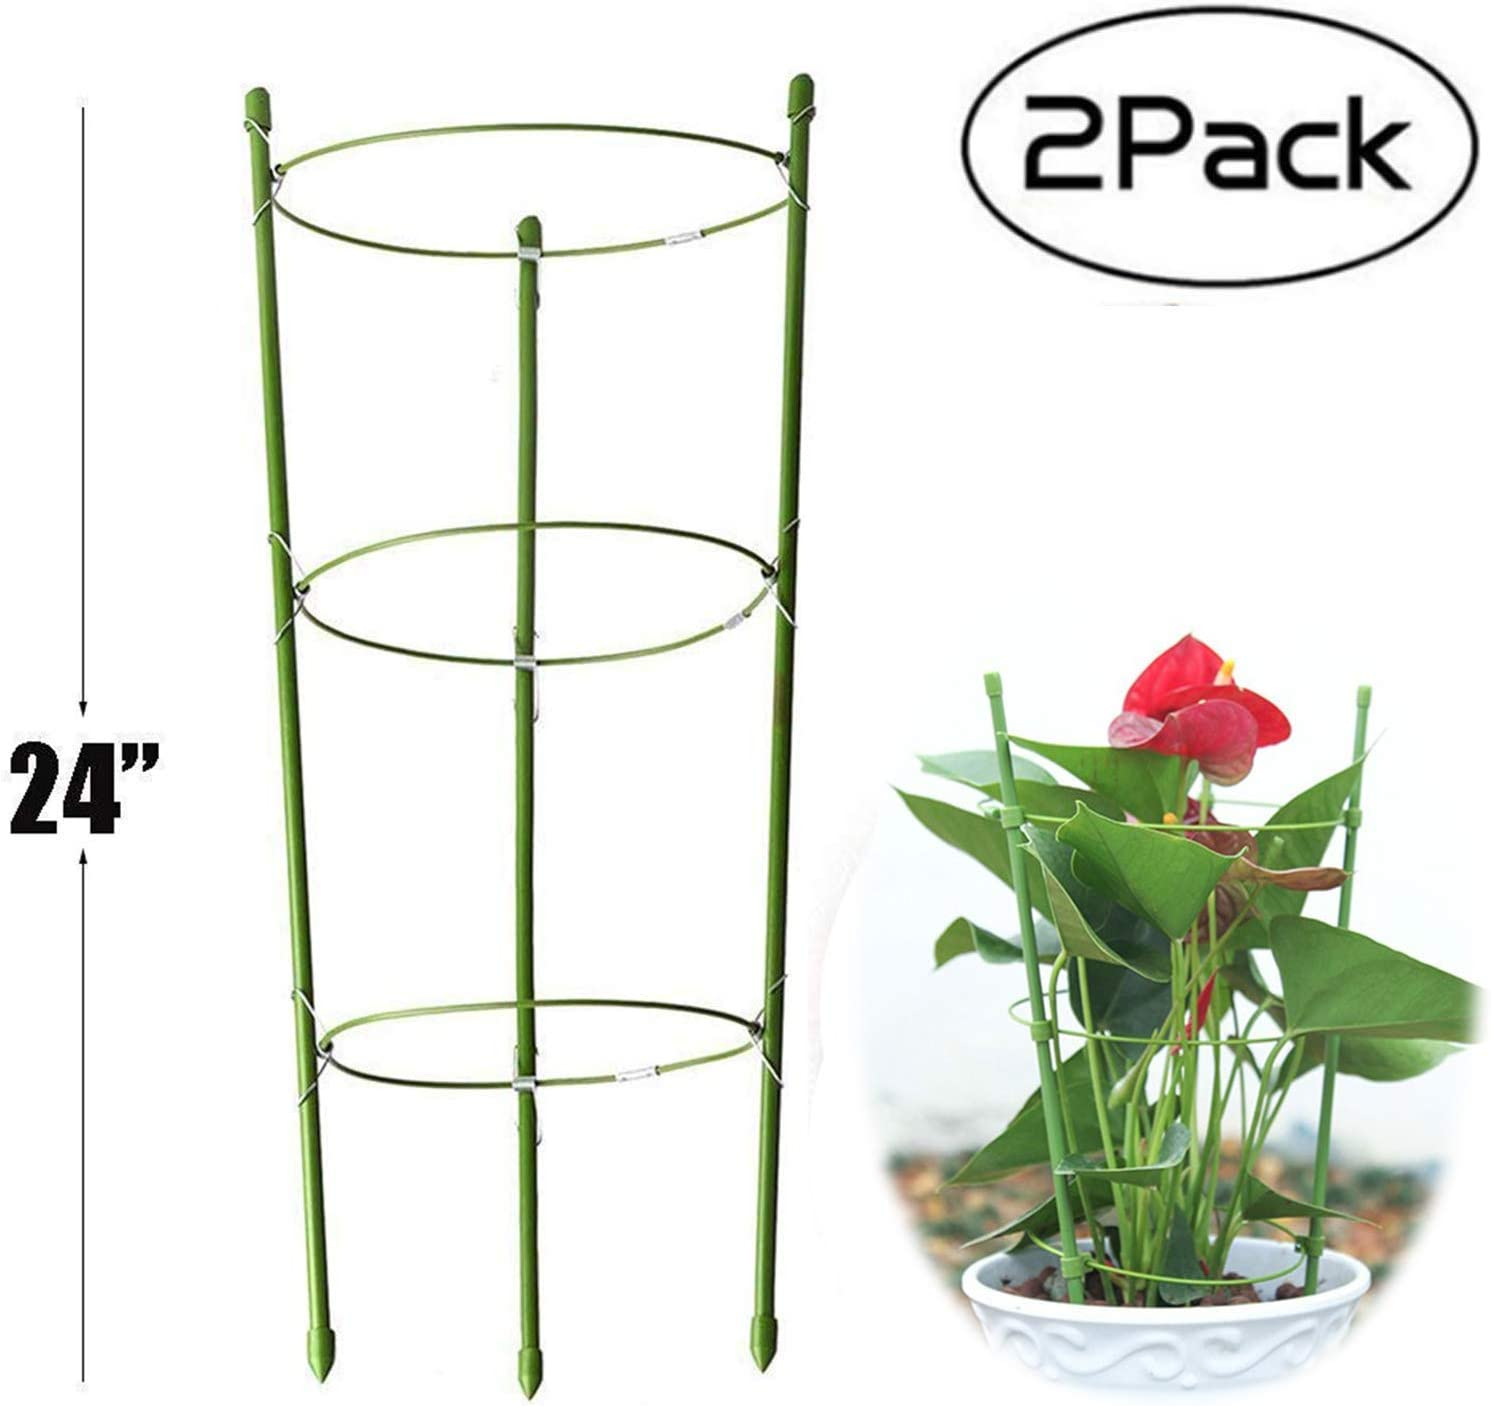 Anzmtosn Large Size 24INCH Garden Plant Support Ring Large Size Garden Trellis Flower Stainless Steel Support Climbing Vegtables/&Flowers/&Fruit Grow Cage with 3 Adjustable Rings 60CM 2PCS